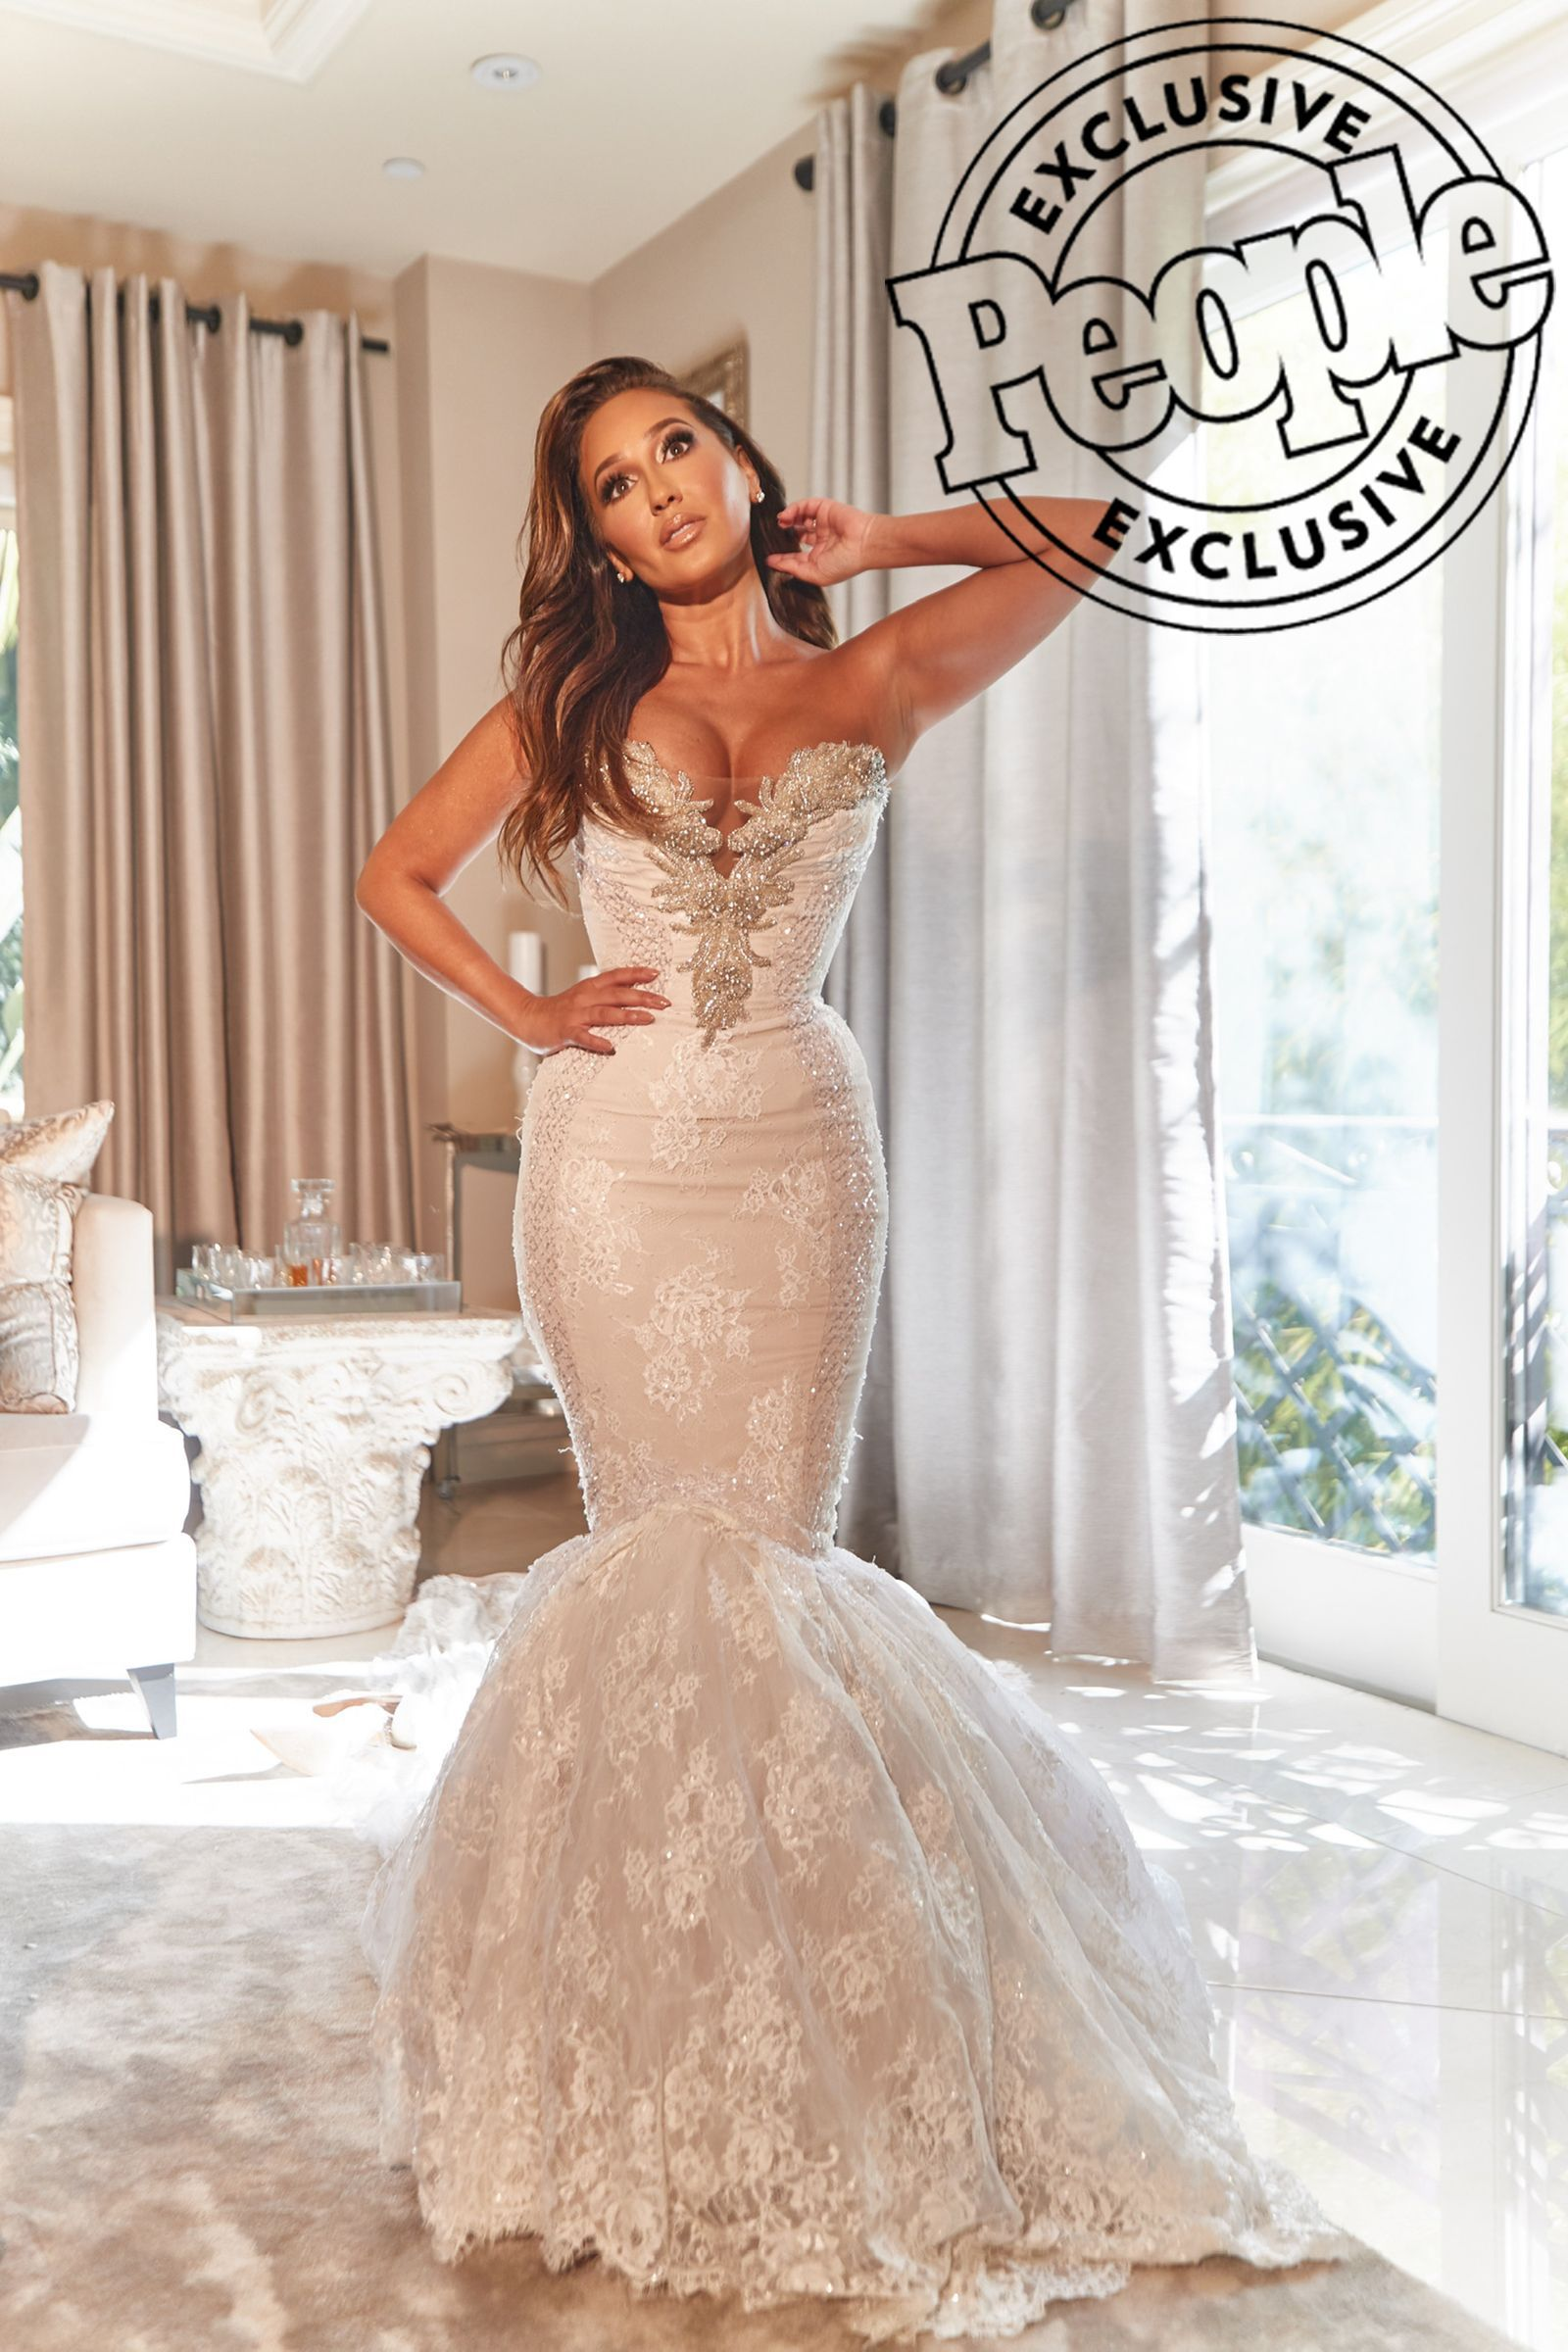 Adrienne Bailon Houghton Rewears Unaltered Wedding Dress 3 Years Later It Fit The Exact In 2020 Celebrity Wedding Dresses Wedding Dresses Corset Fitted Wedding Dress